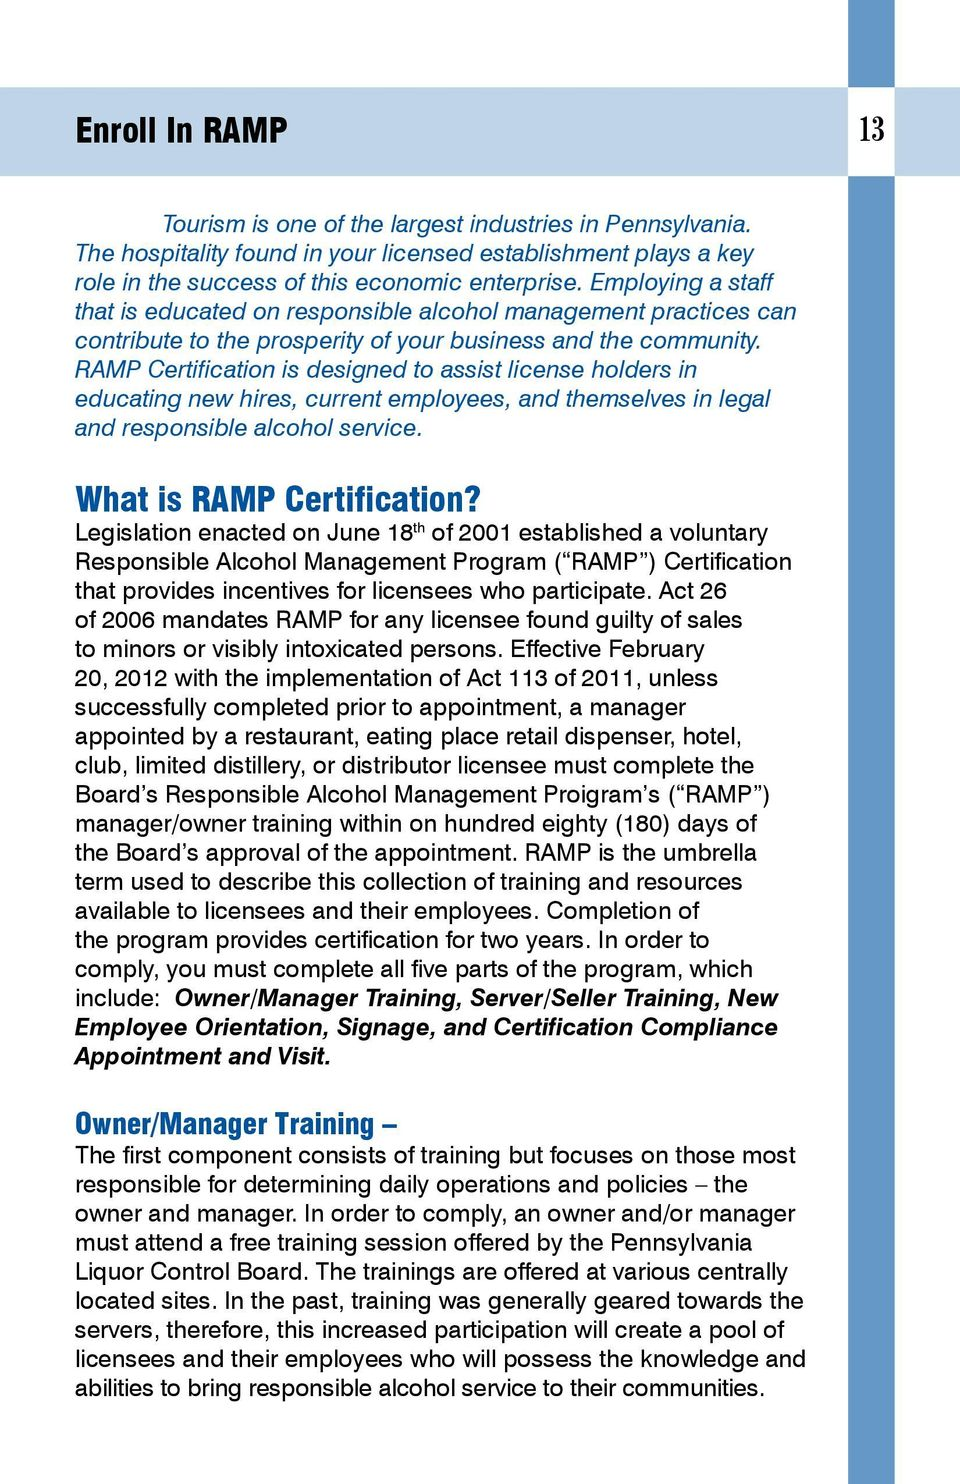 RAMP Certification is designed to assist license holders in educating new hires, current employees, and themselves in legal and responsible alcohol service. What is RAMP Certification?